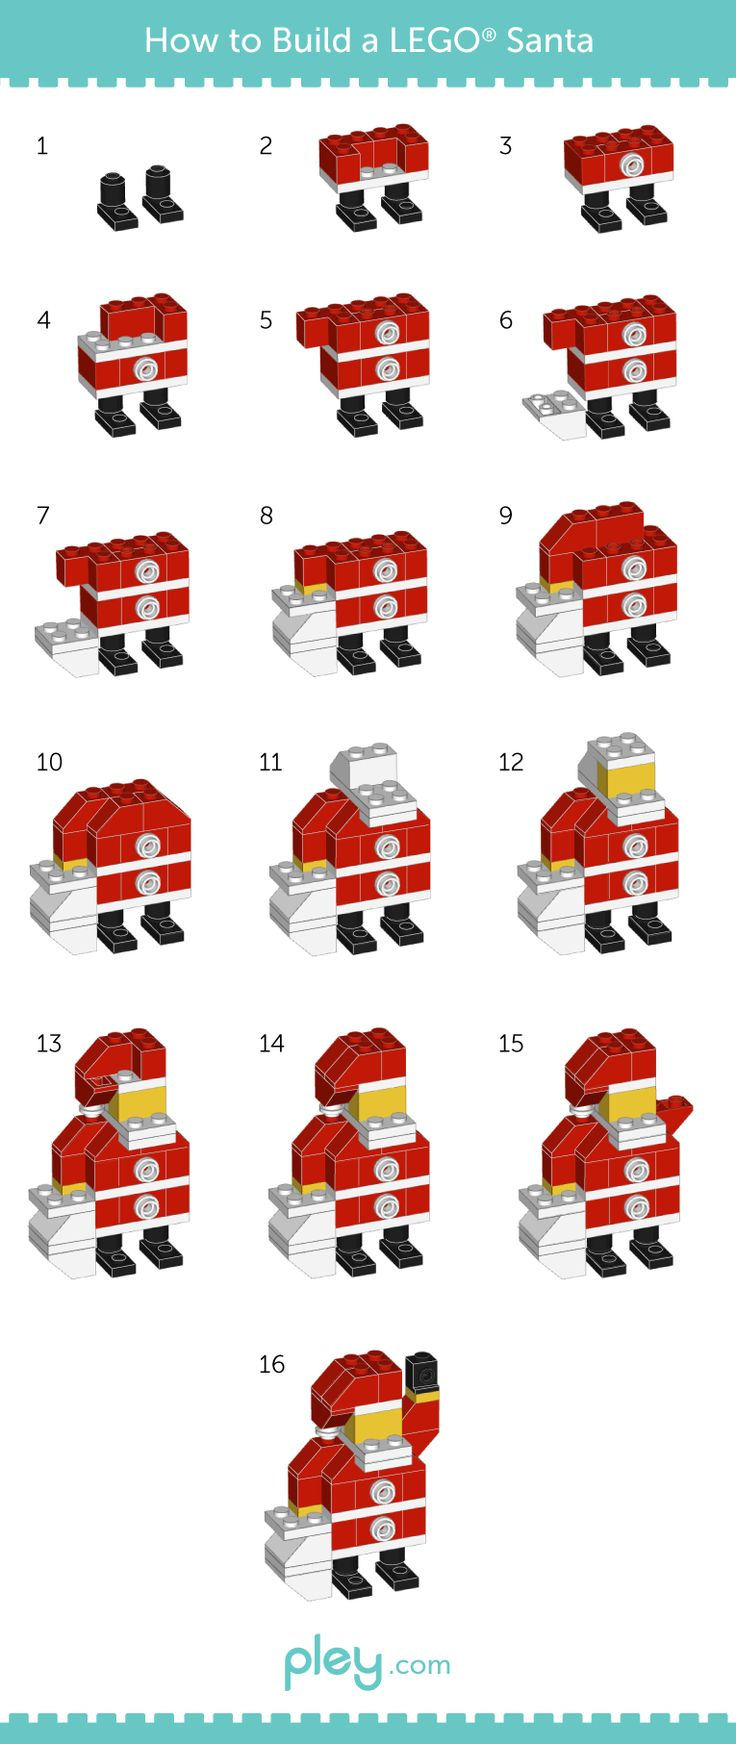 Pley reveals how to build a LEGO snowman, Christmas Tree and Santa Claus. Pley is the leading online toy rental service specializing in LEGO and other cool, unique toys.